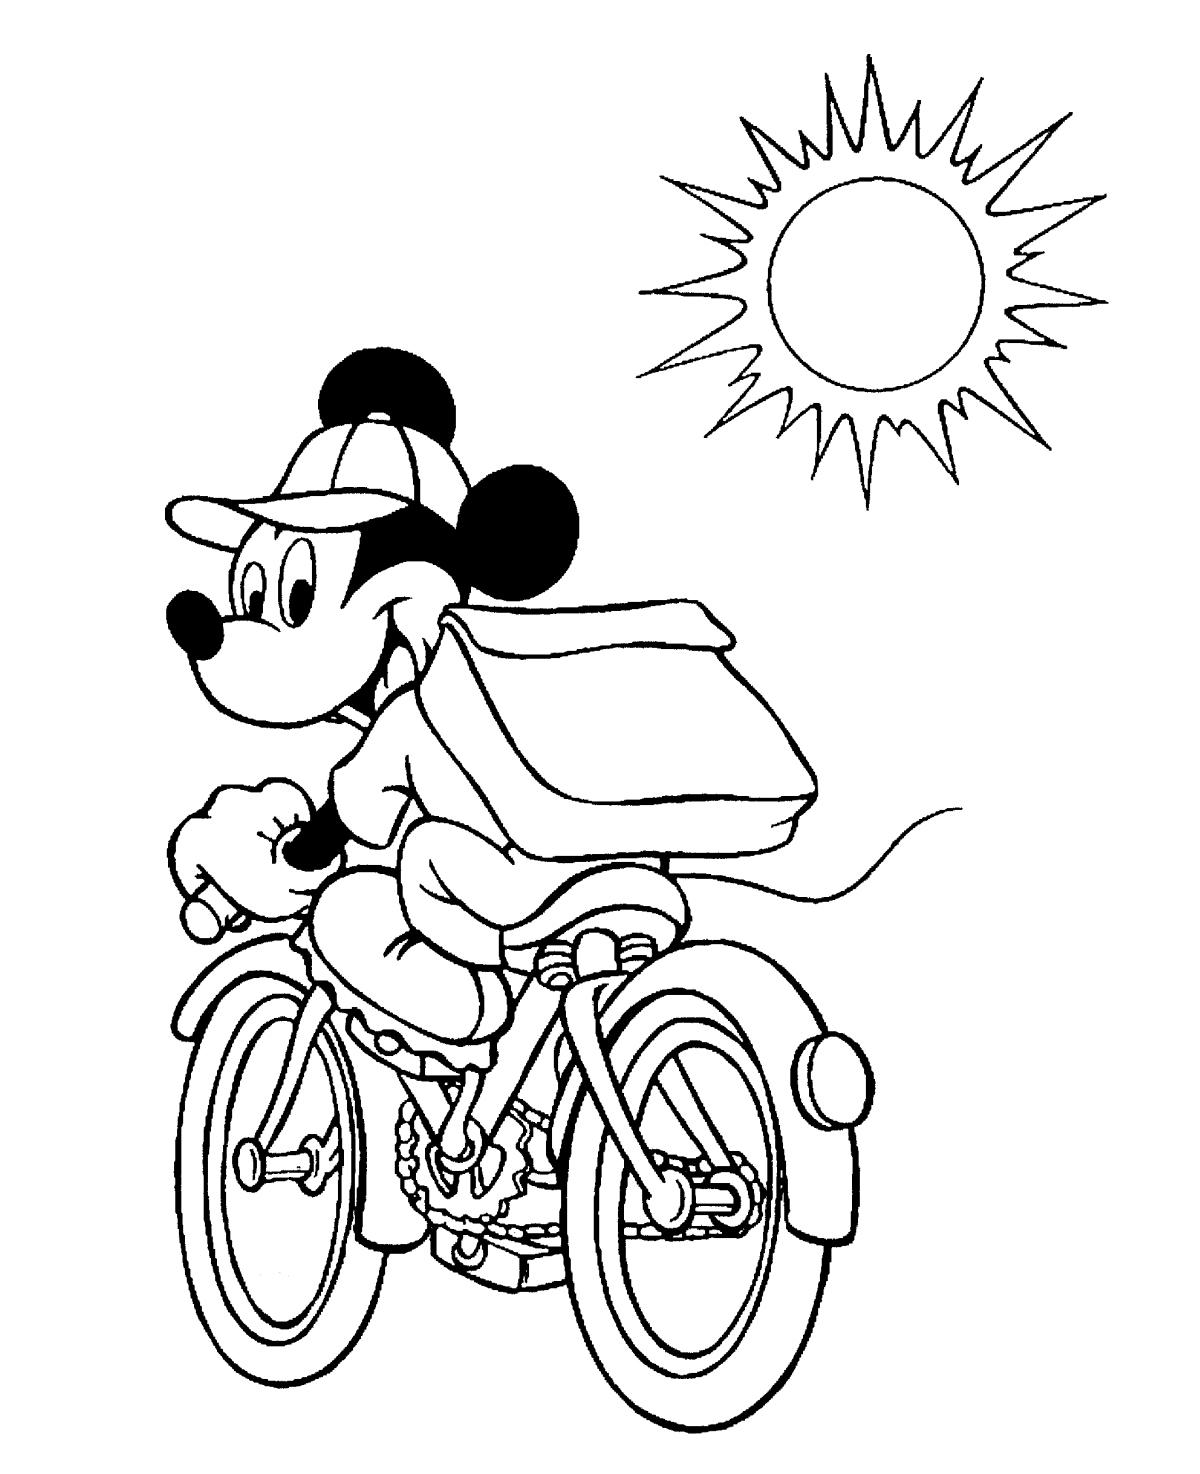 Bike Drawing Images at GetDrawings.com | Free for personal use Bike ...